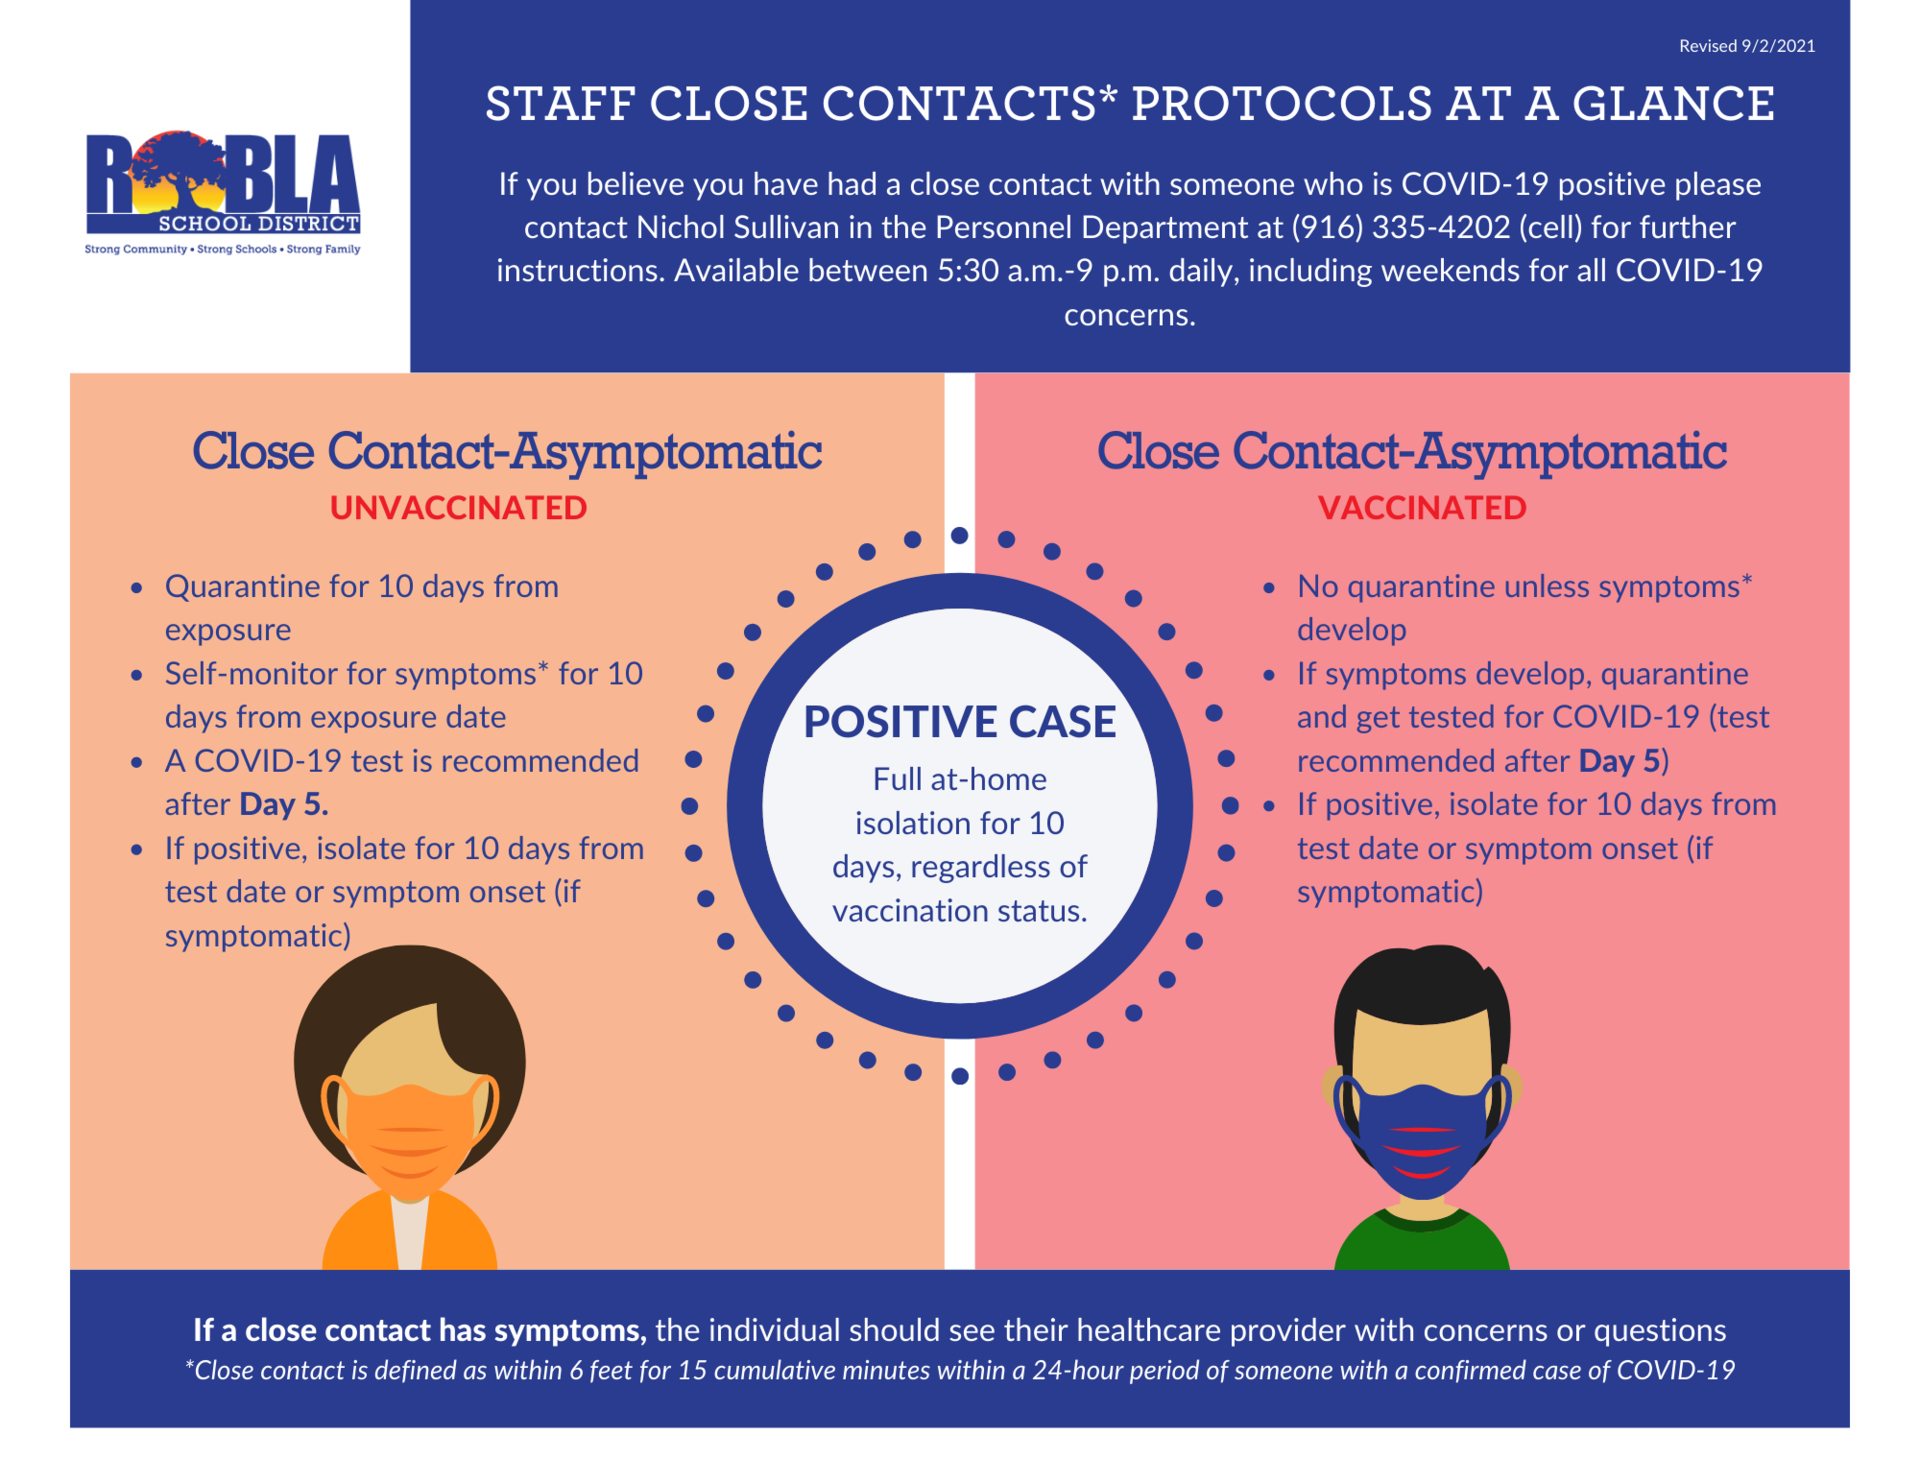 Image of STAFF CLOSE CONTACTS PROTOCOLS AT A GLANCE